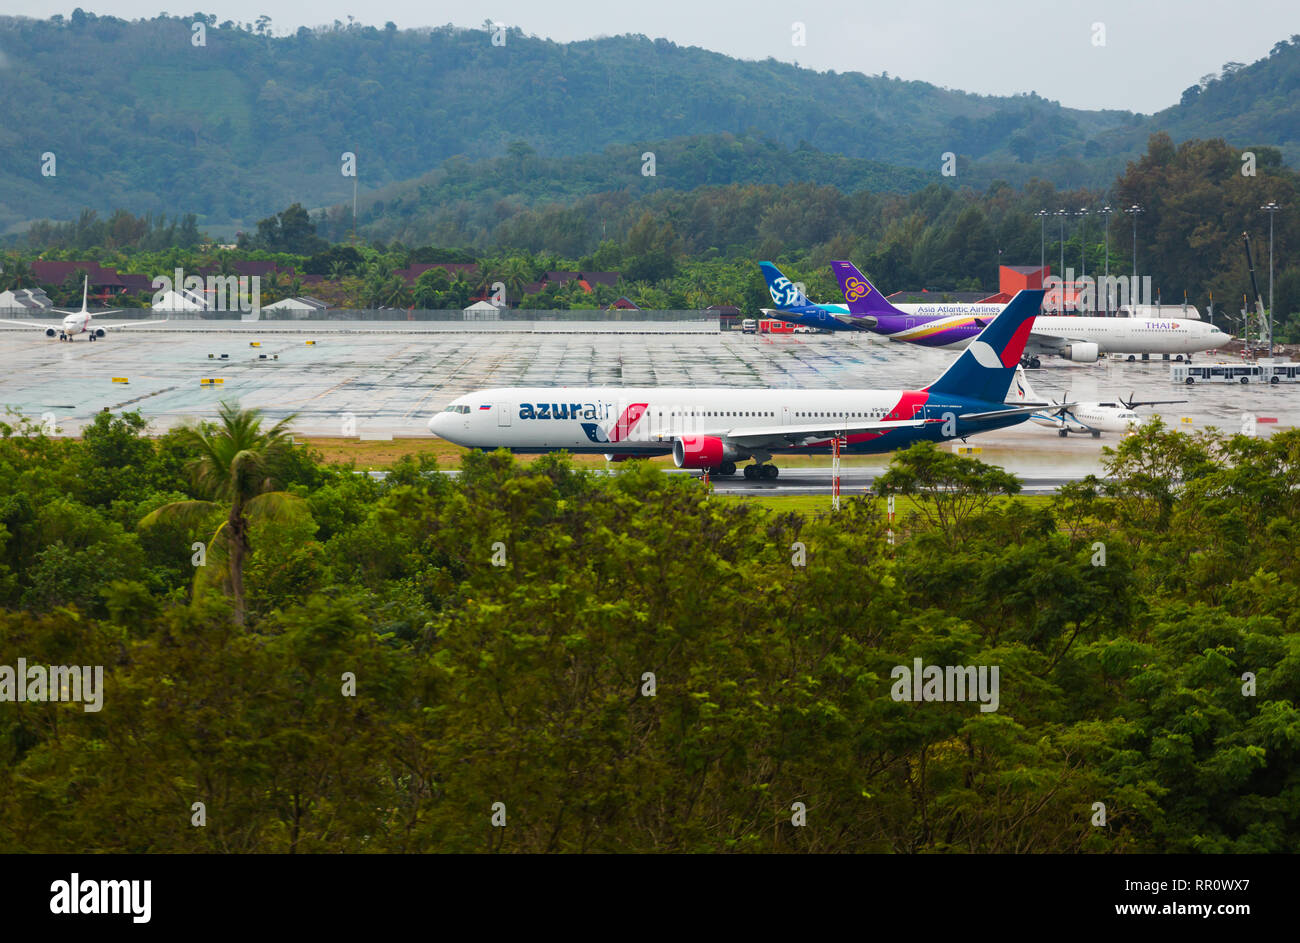 Boeing 767 ready for takeoff - Stock Image